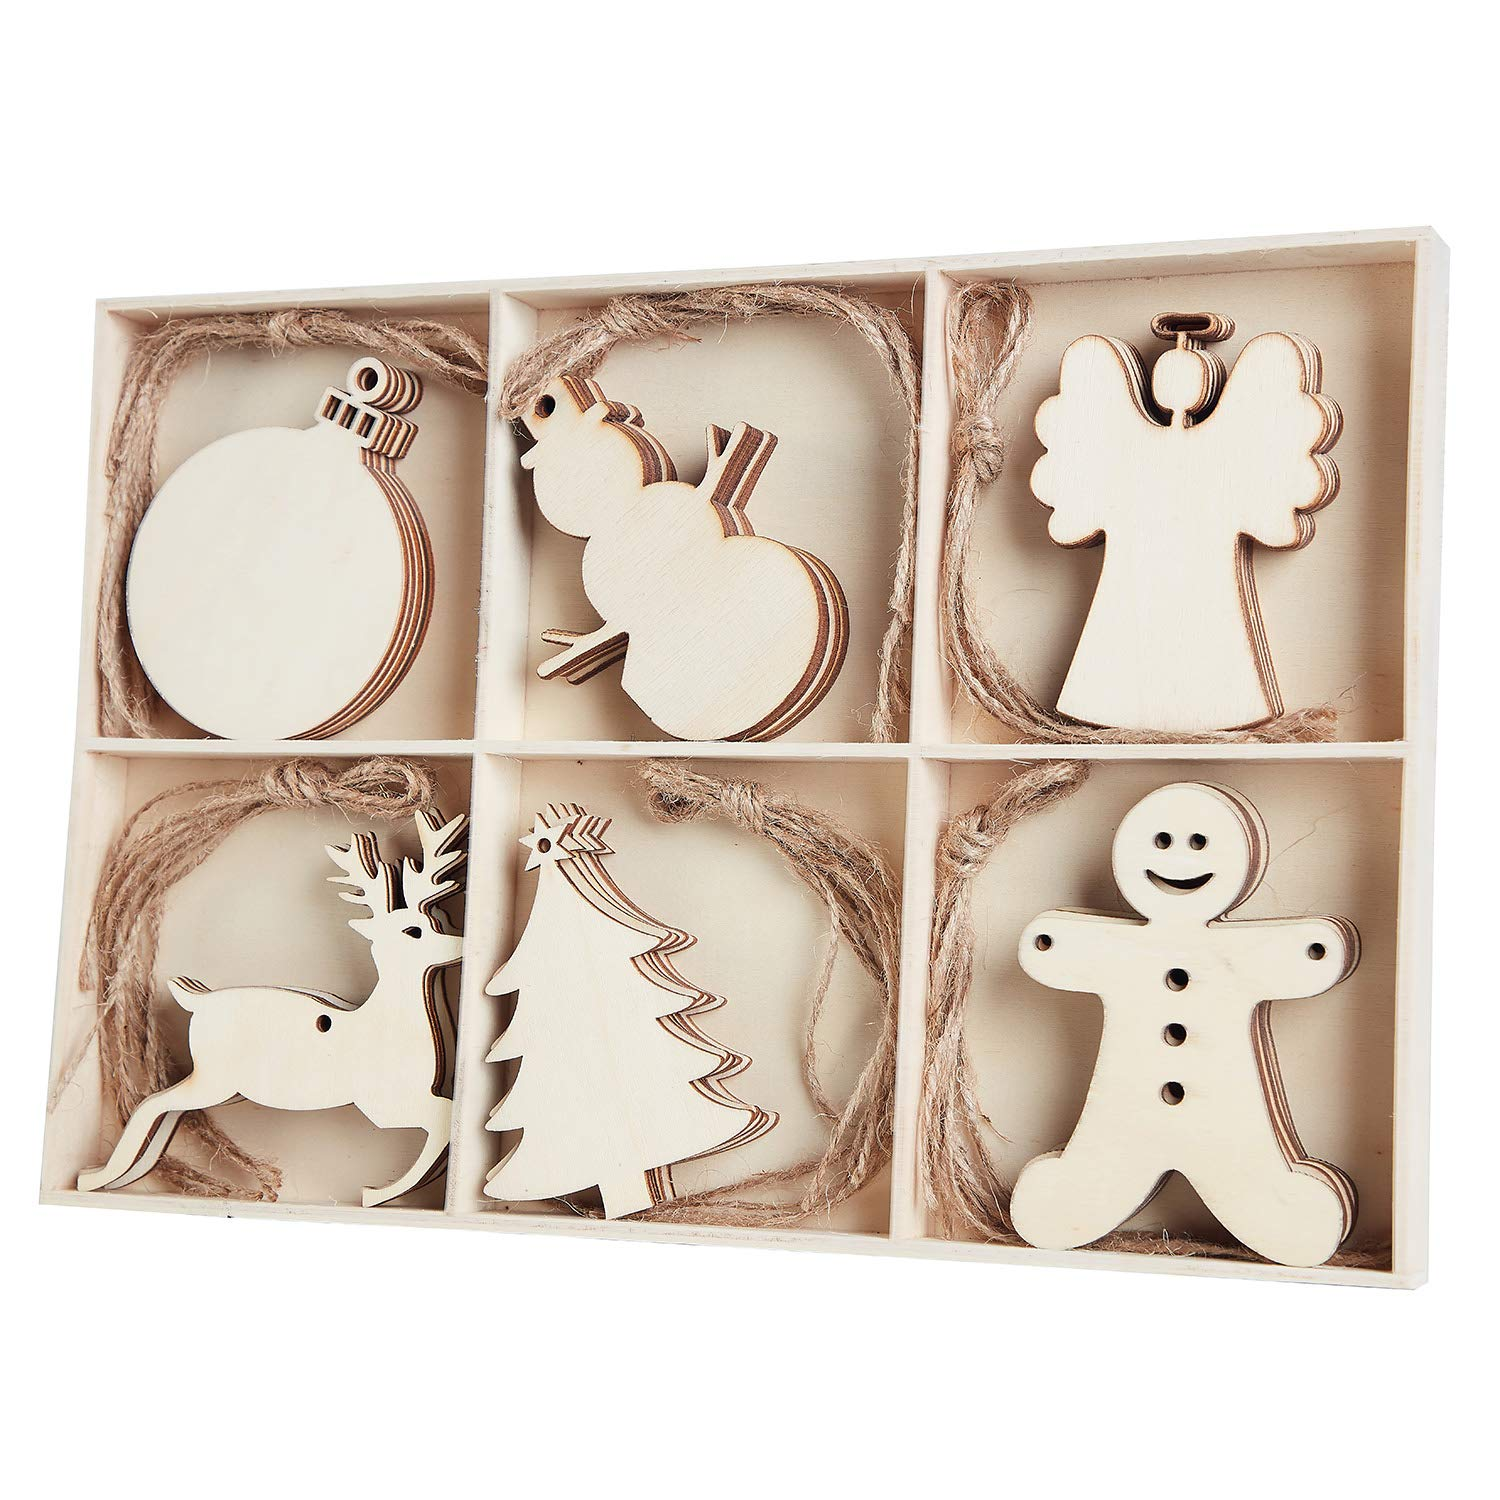 MACTING 30pcs Unfinished Wood Christmas Ornaments with Holes - Angel, Deer, Ball, Doll, Snowman, Christmas Tree Cutouts Tag Tree Hanging Decorations